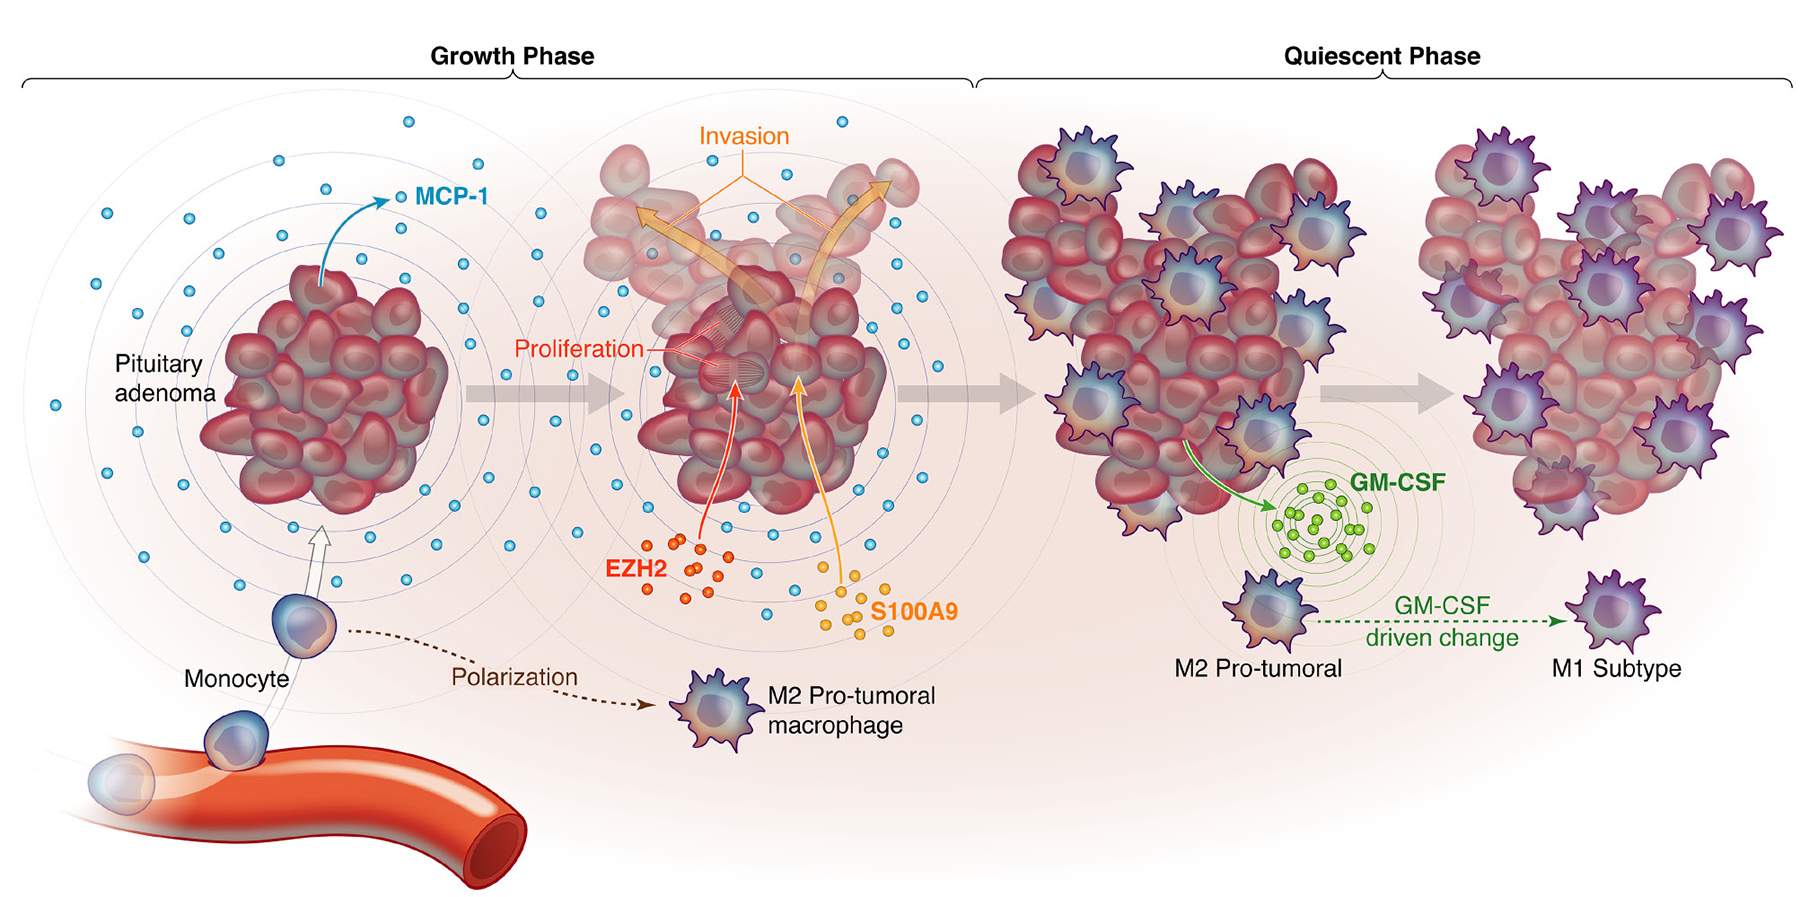 Figure 6. Proposed model for how macrophages are recruited to NFPAs in a manner that creates distinct growth phases.